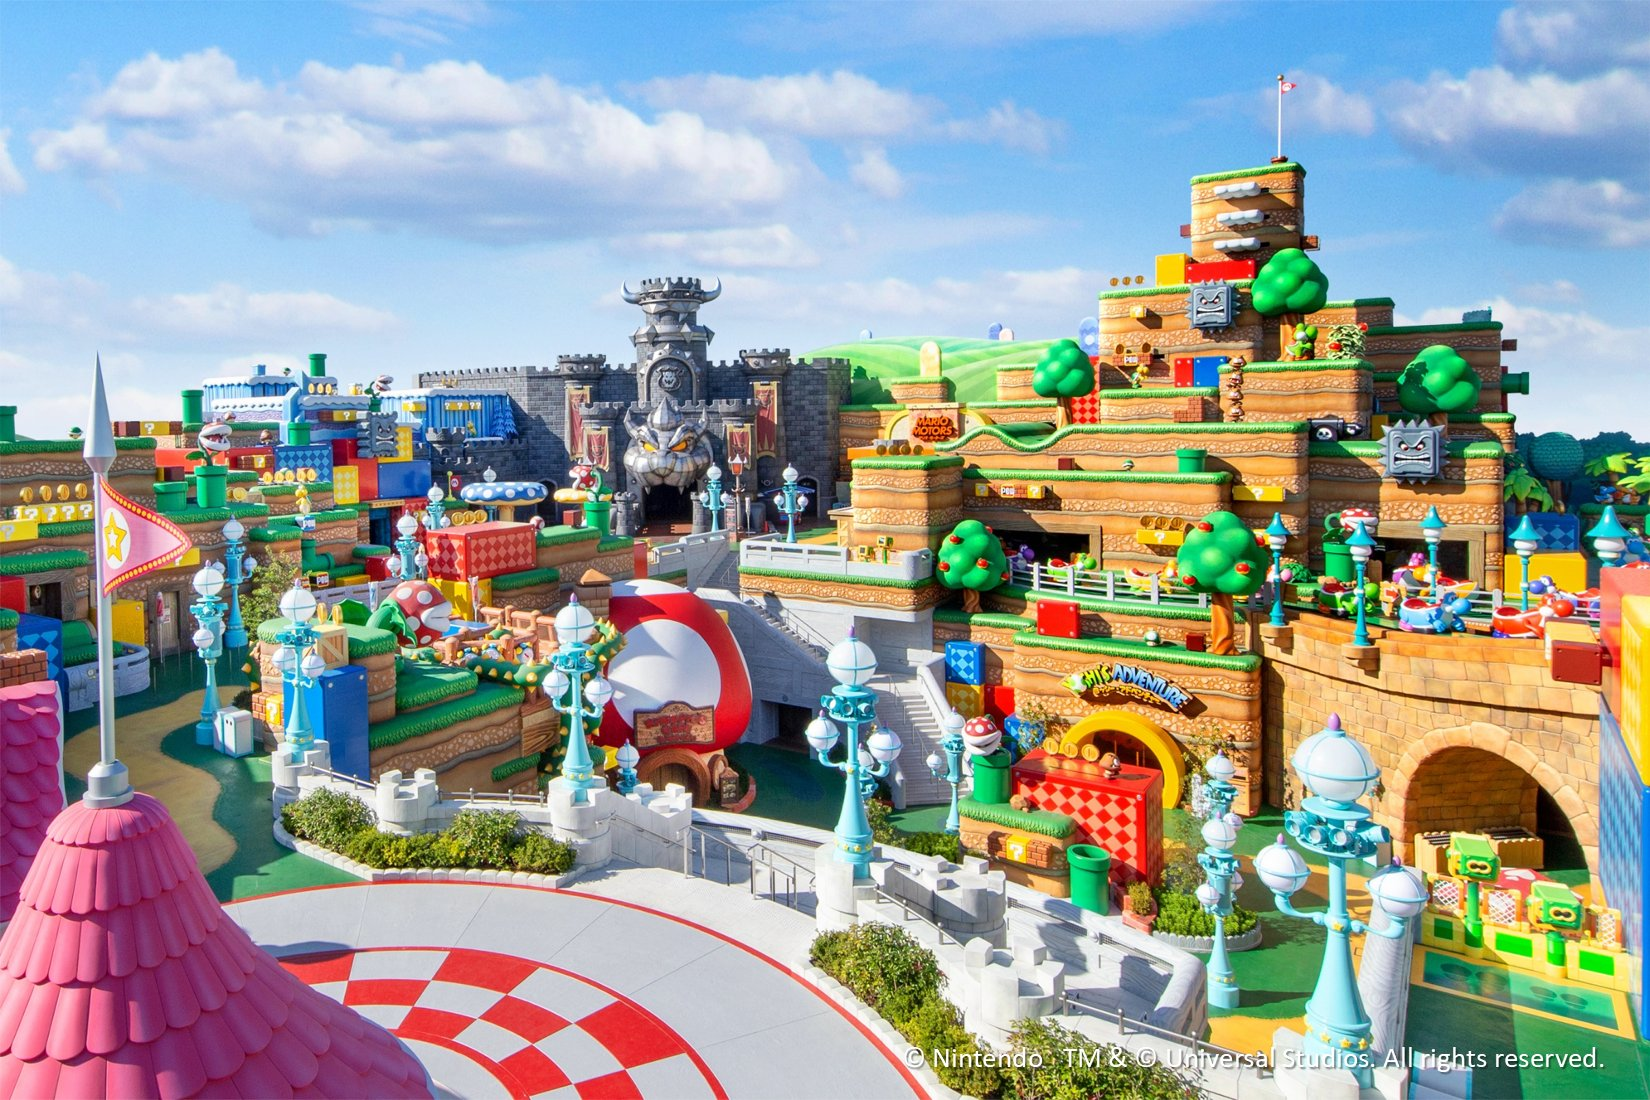 Super Nintendo World opens in Universal Japan in February